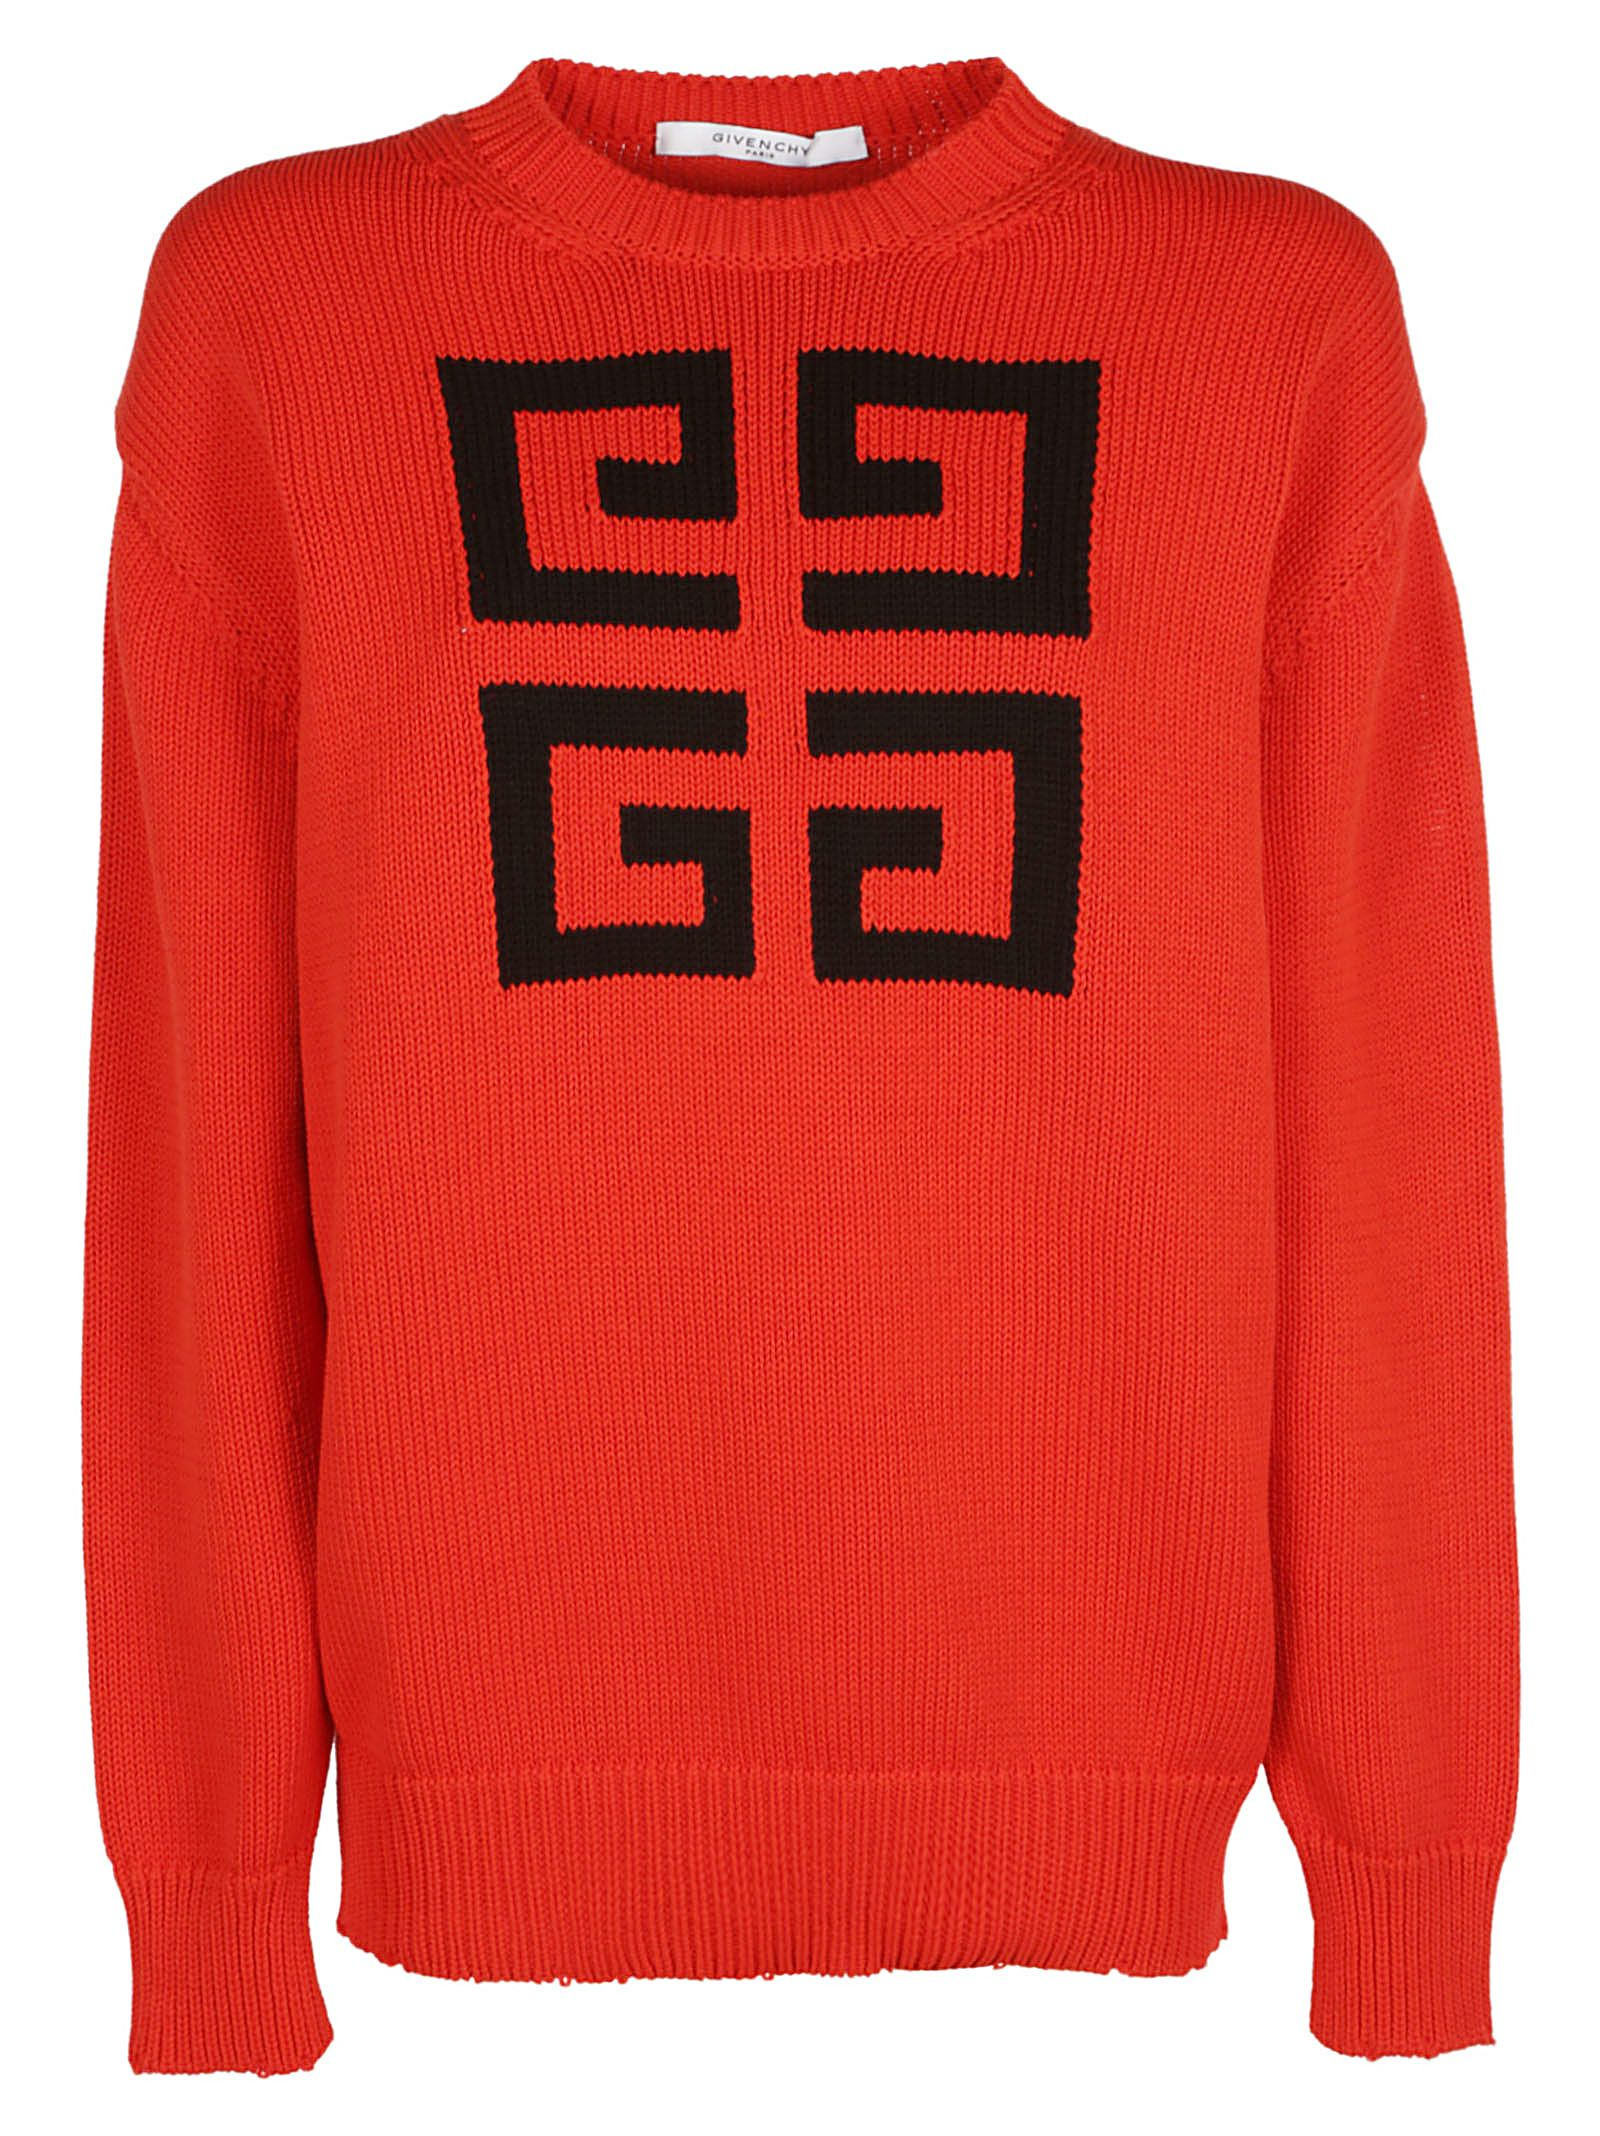 Givenchy Givenchy Pullover - Red black - 10825900  a8e821840b70